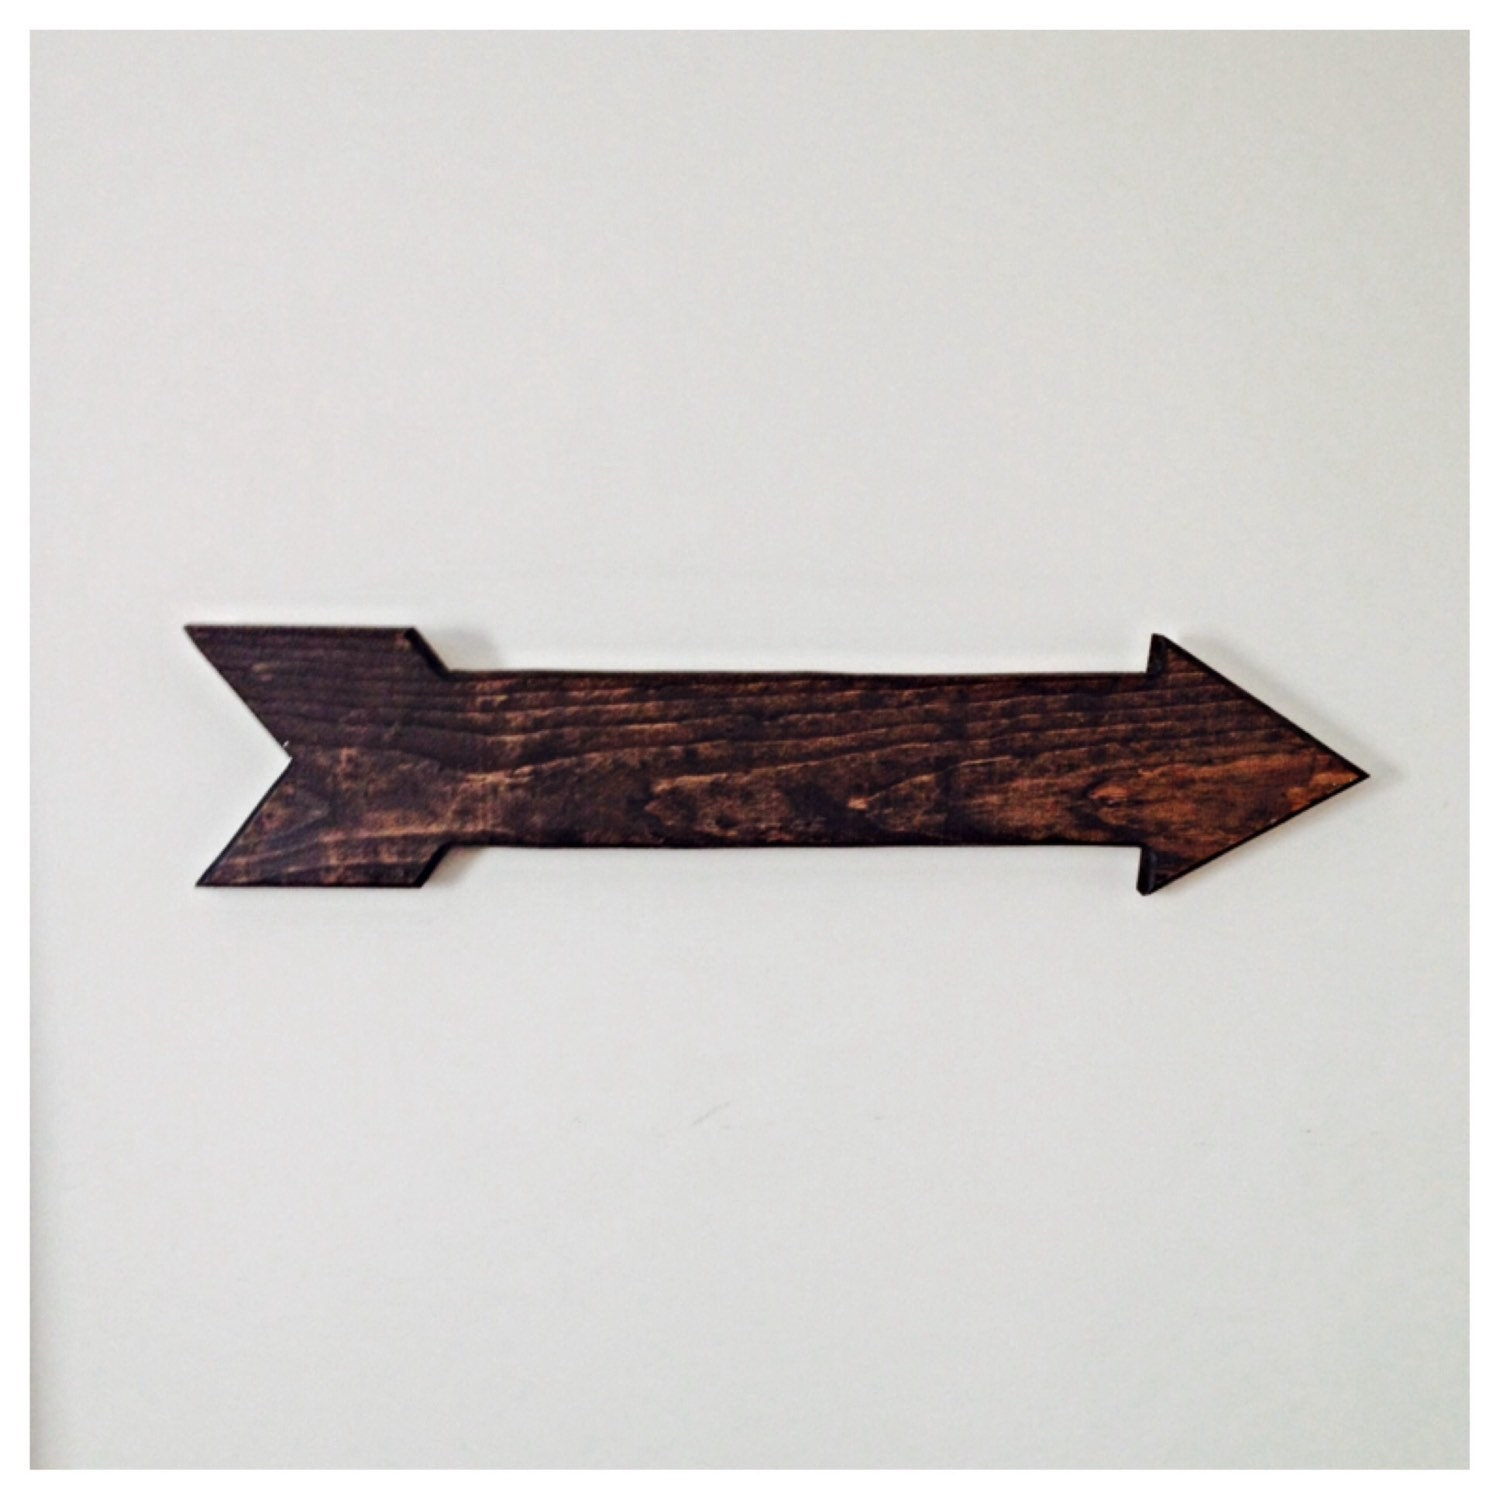 Wall Decor Wooden Arrows : Wooden arrow rustic wall decor wedding home